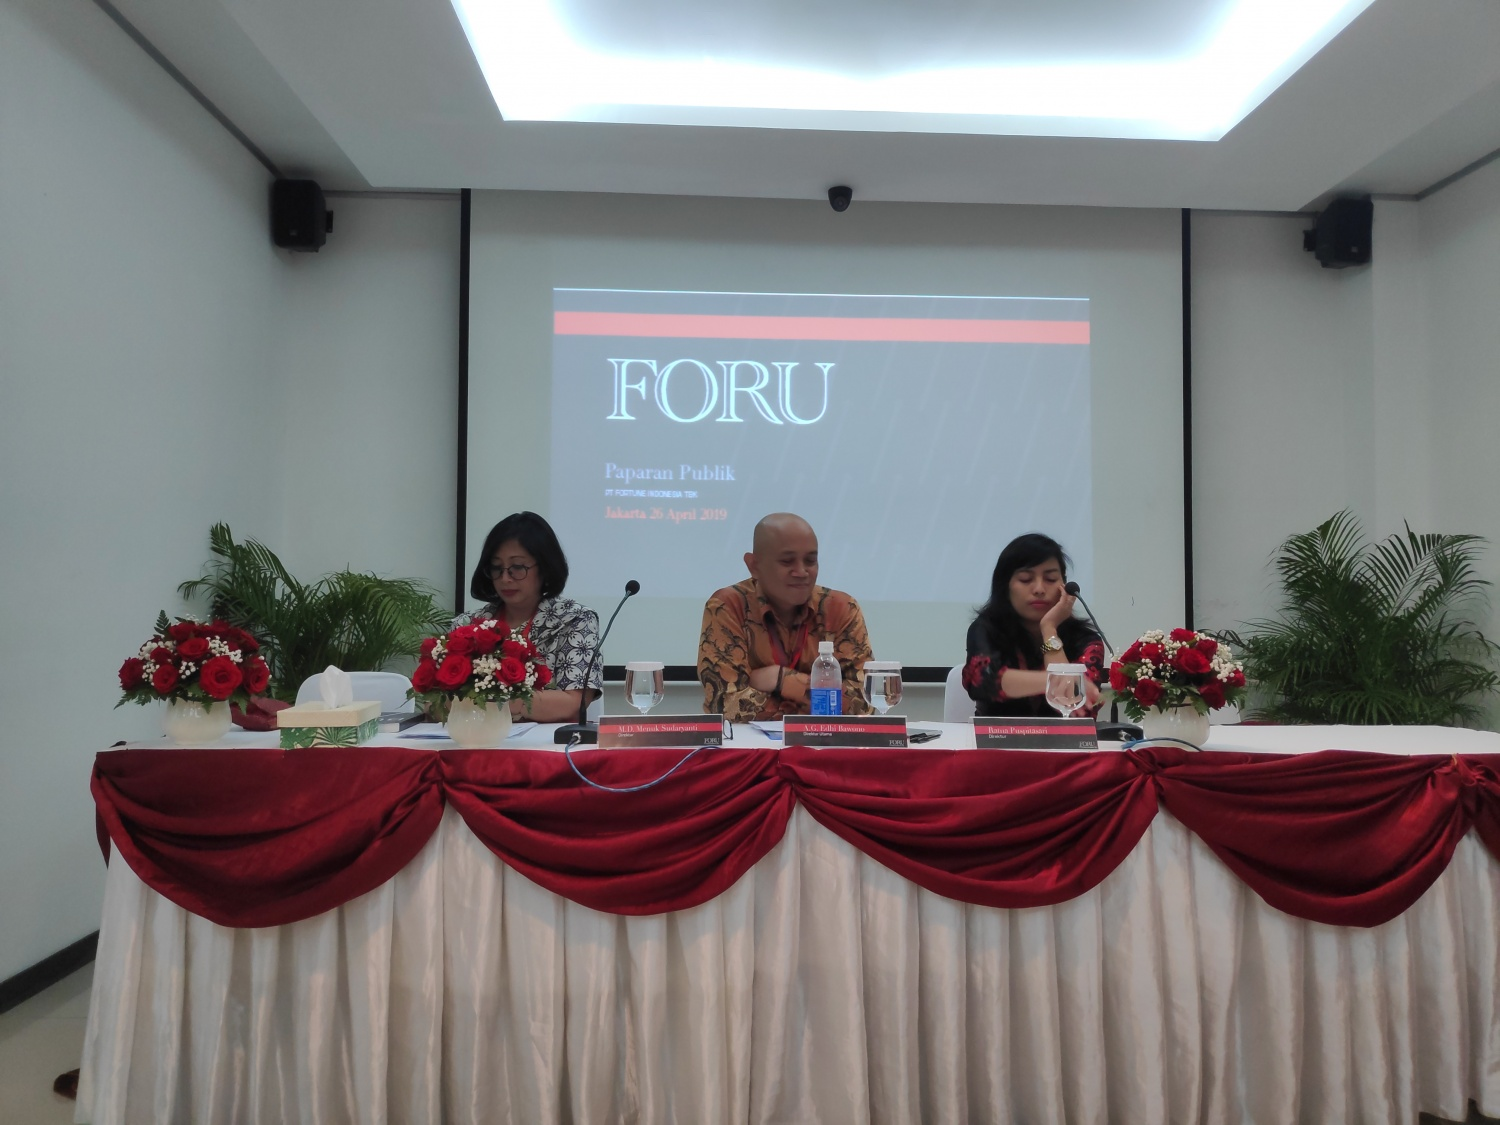 FORU Fortune Indonesia eyes for Rp 294 billion in revenue this year - IDNFinancials